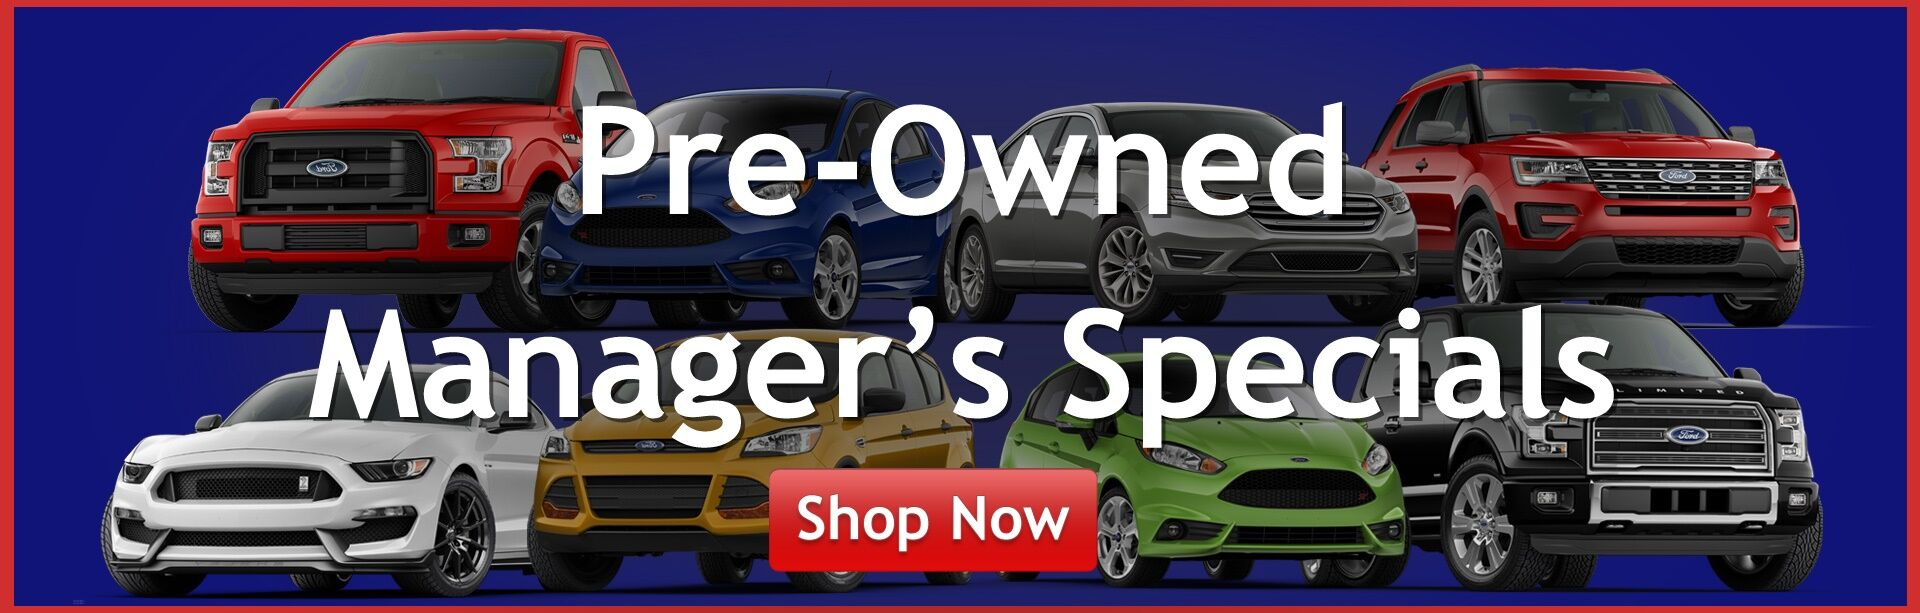 Pre-Owned Manager's Specials